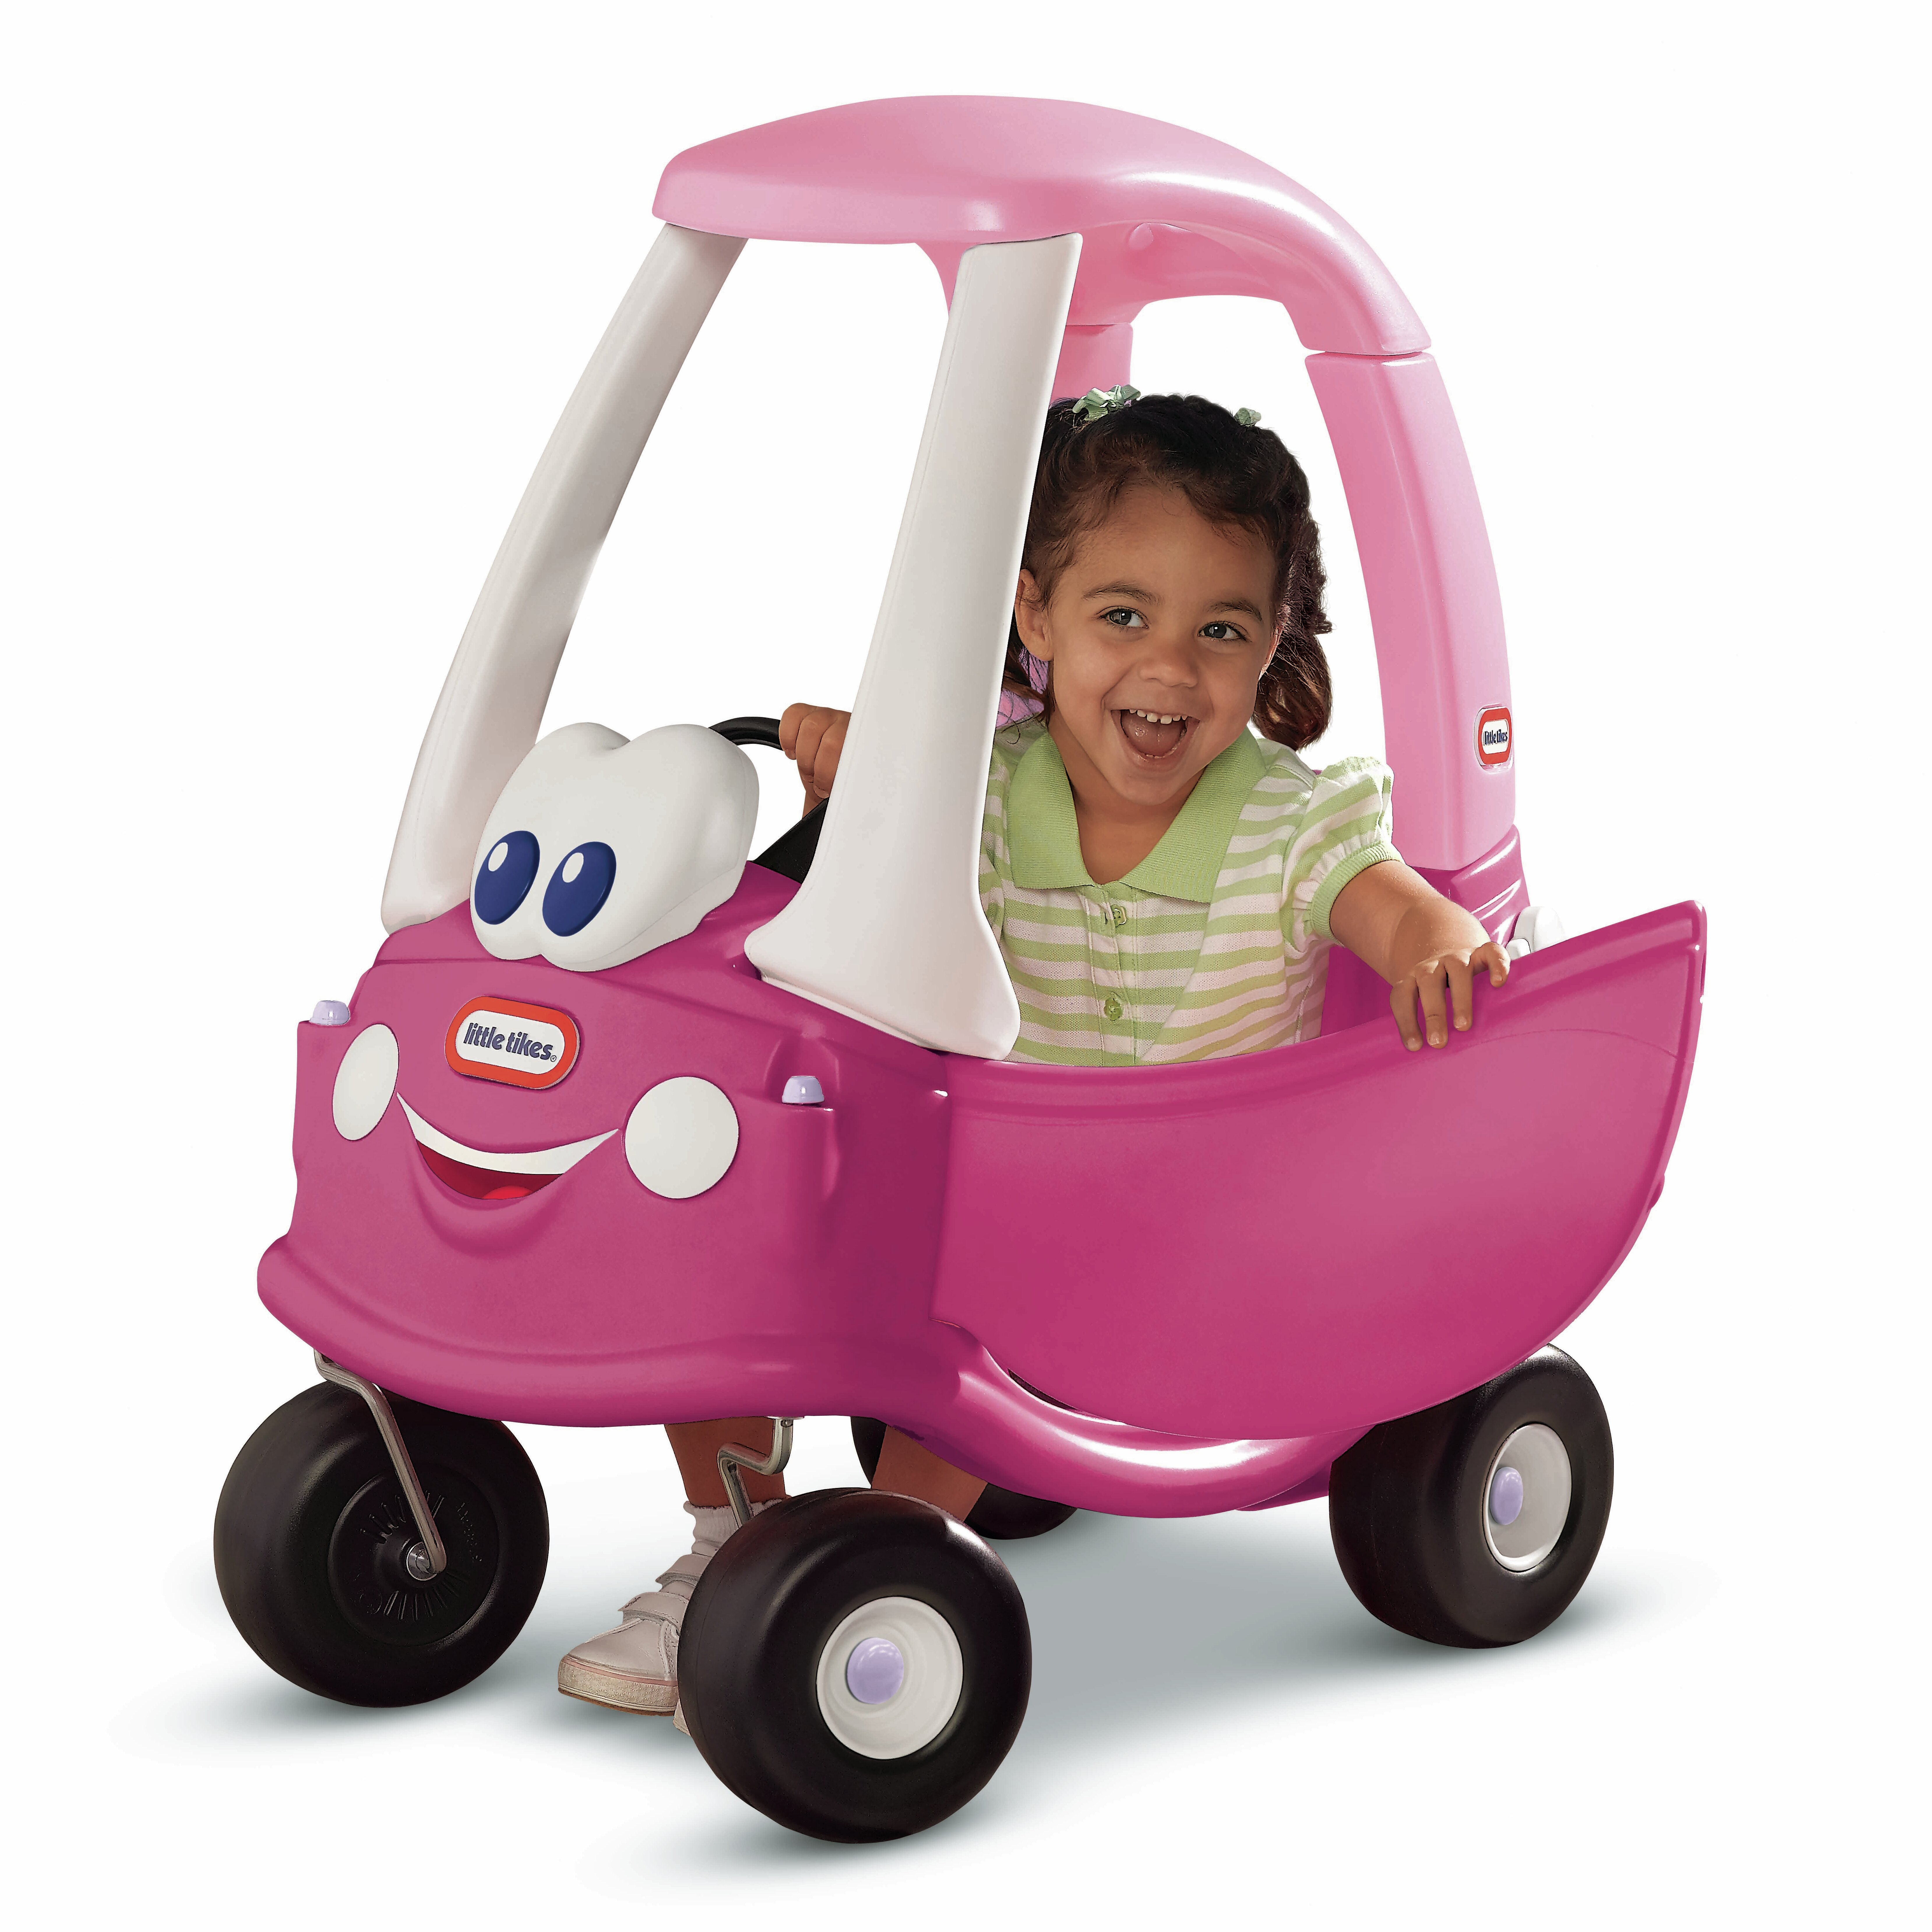 Princess cozy coupe push car wayfair for Little tikes 2 in 1 buildin to learn motor workshop